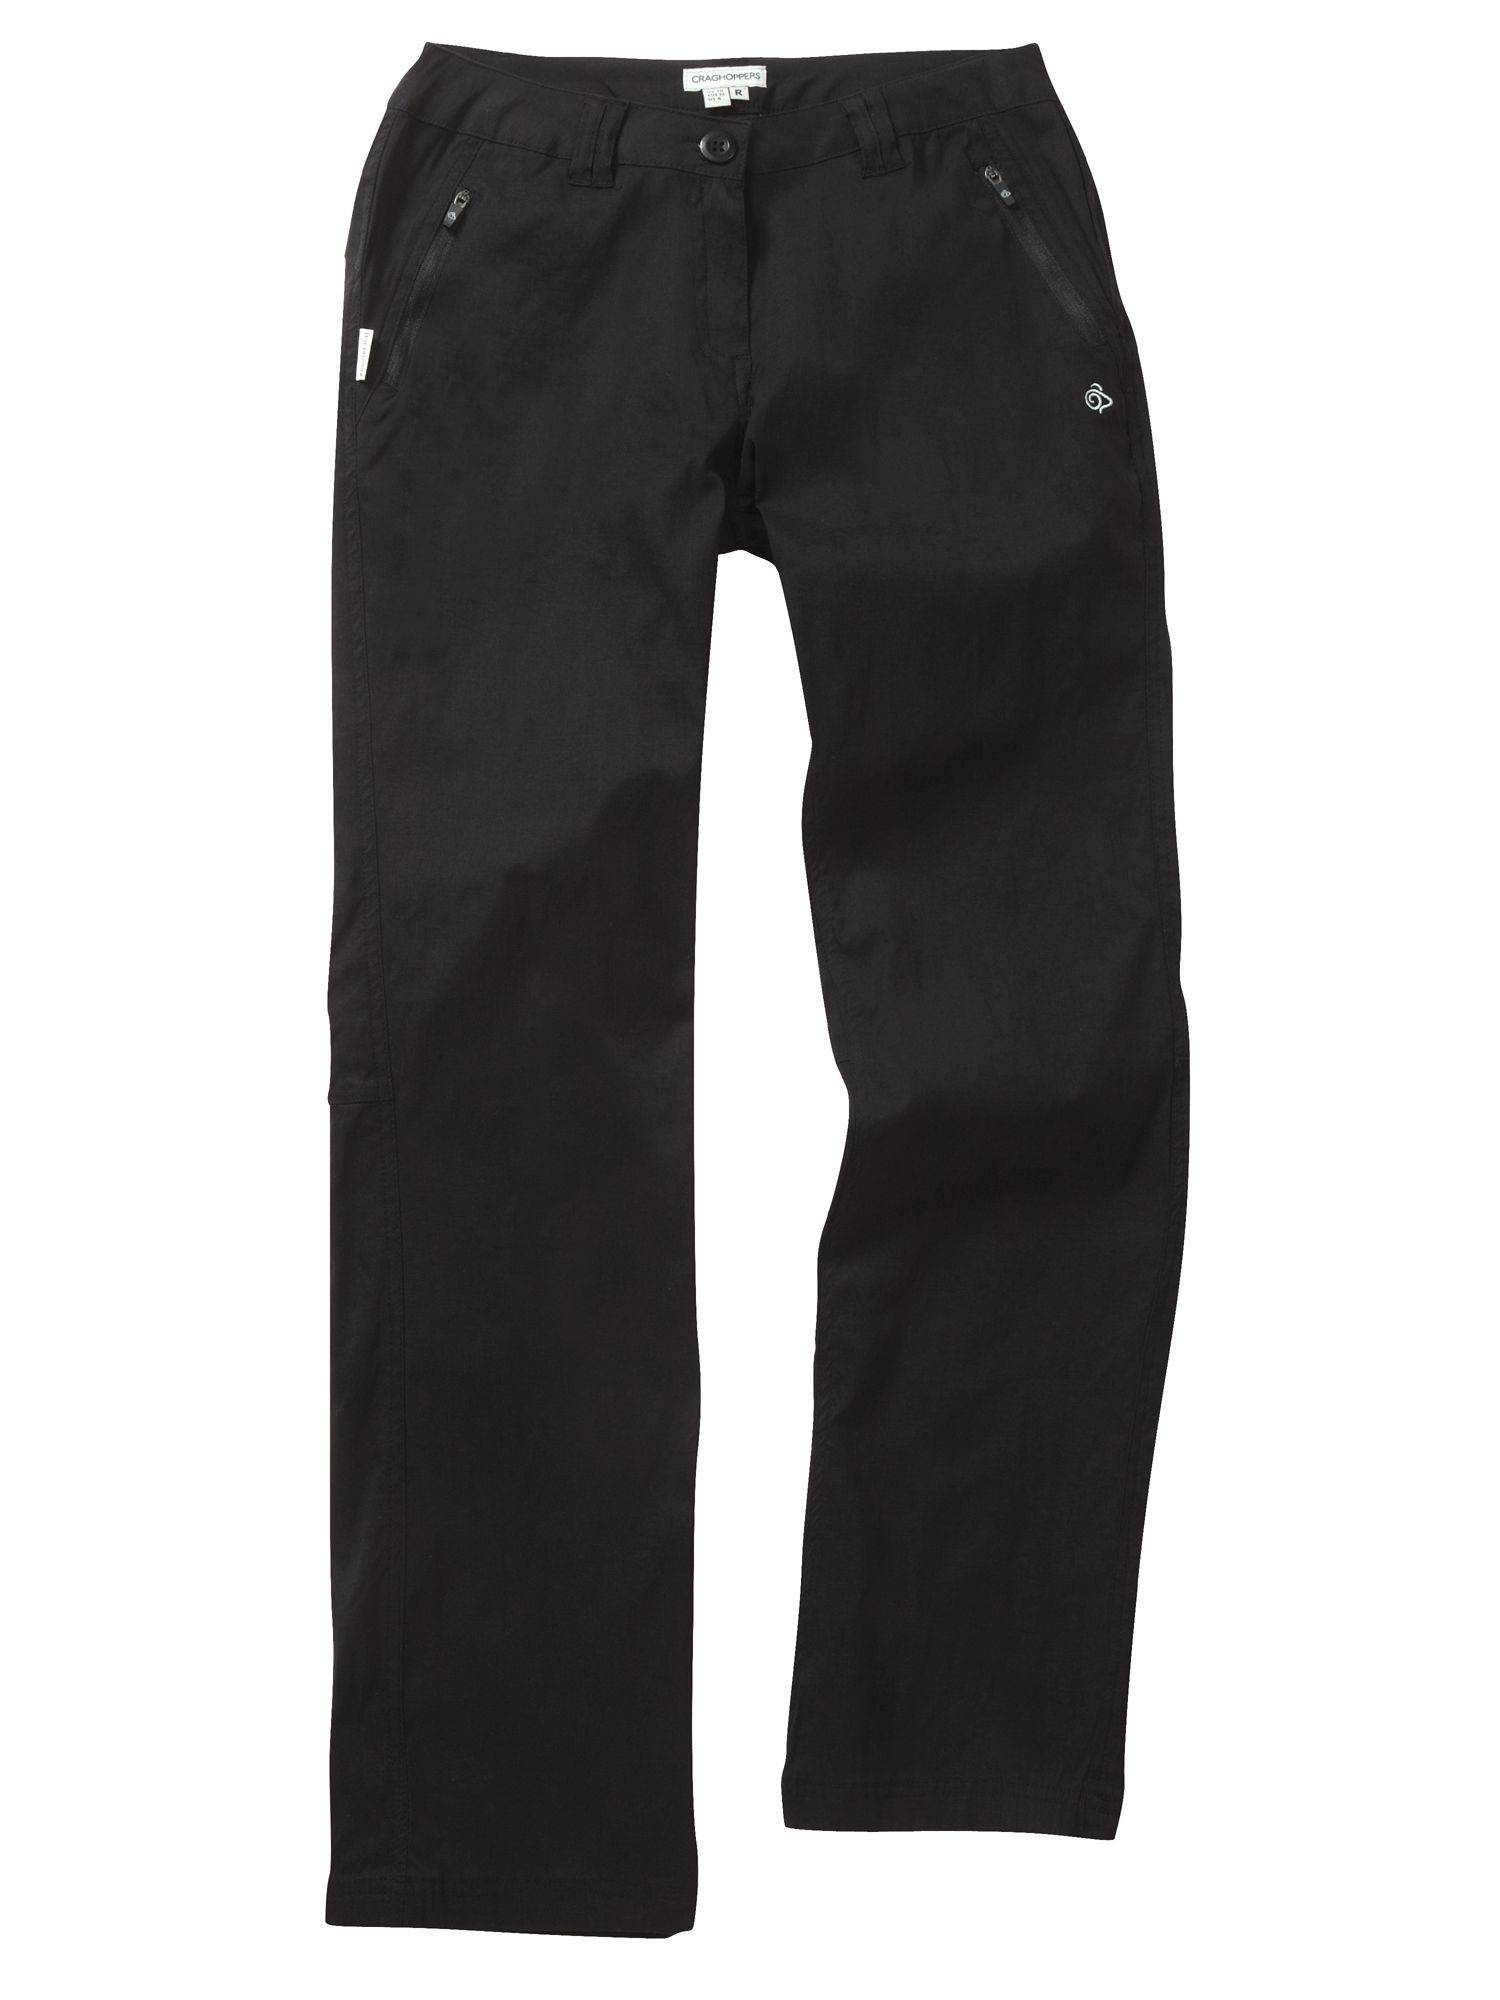 Craghoppers Kiwi pro winter lined trousers (18)